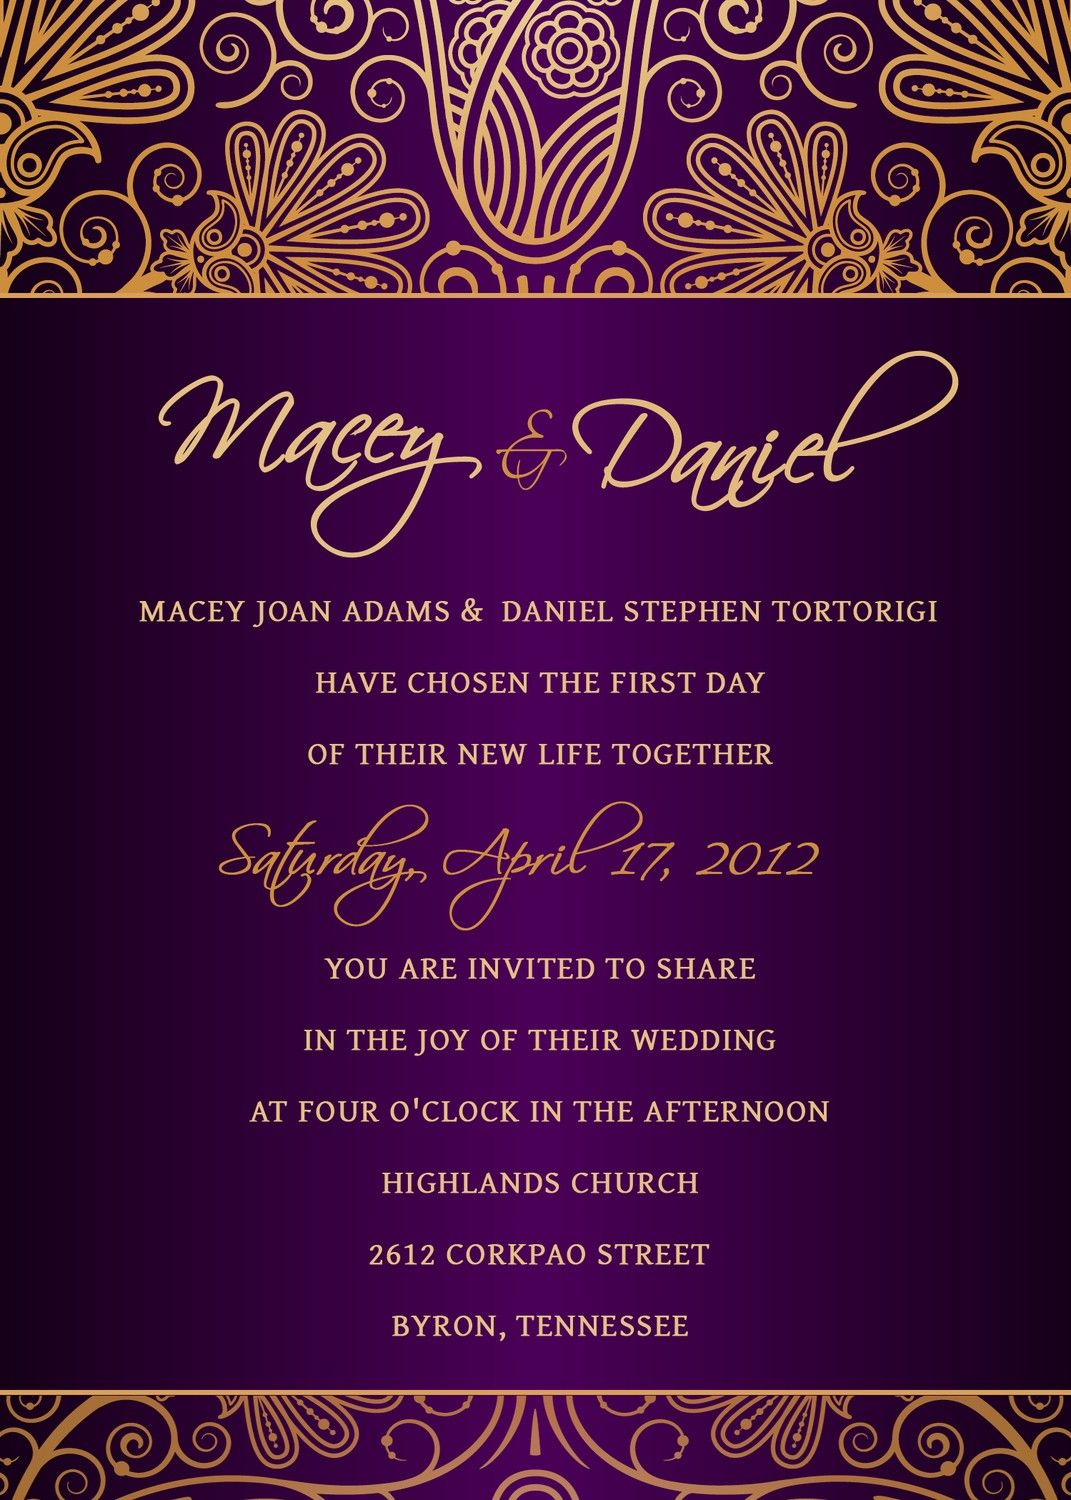 Personalized Royal Purple And Gold Damask Wedding Invitation. Available At  Boardman Printing.